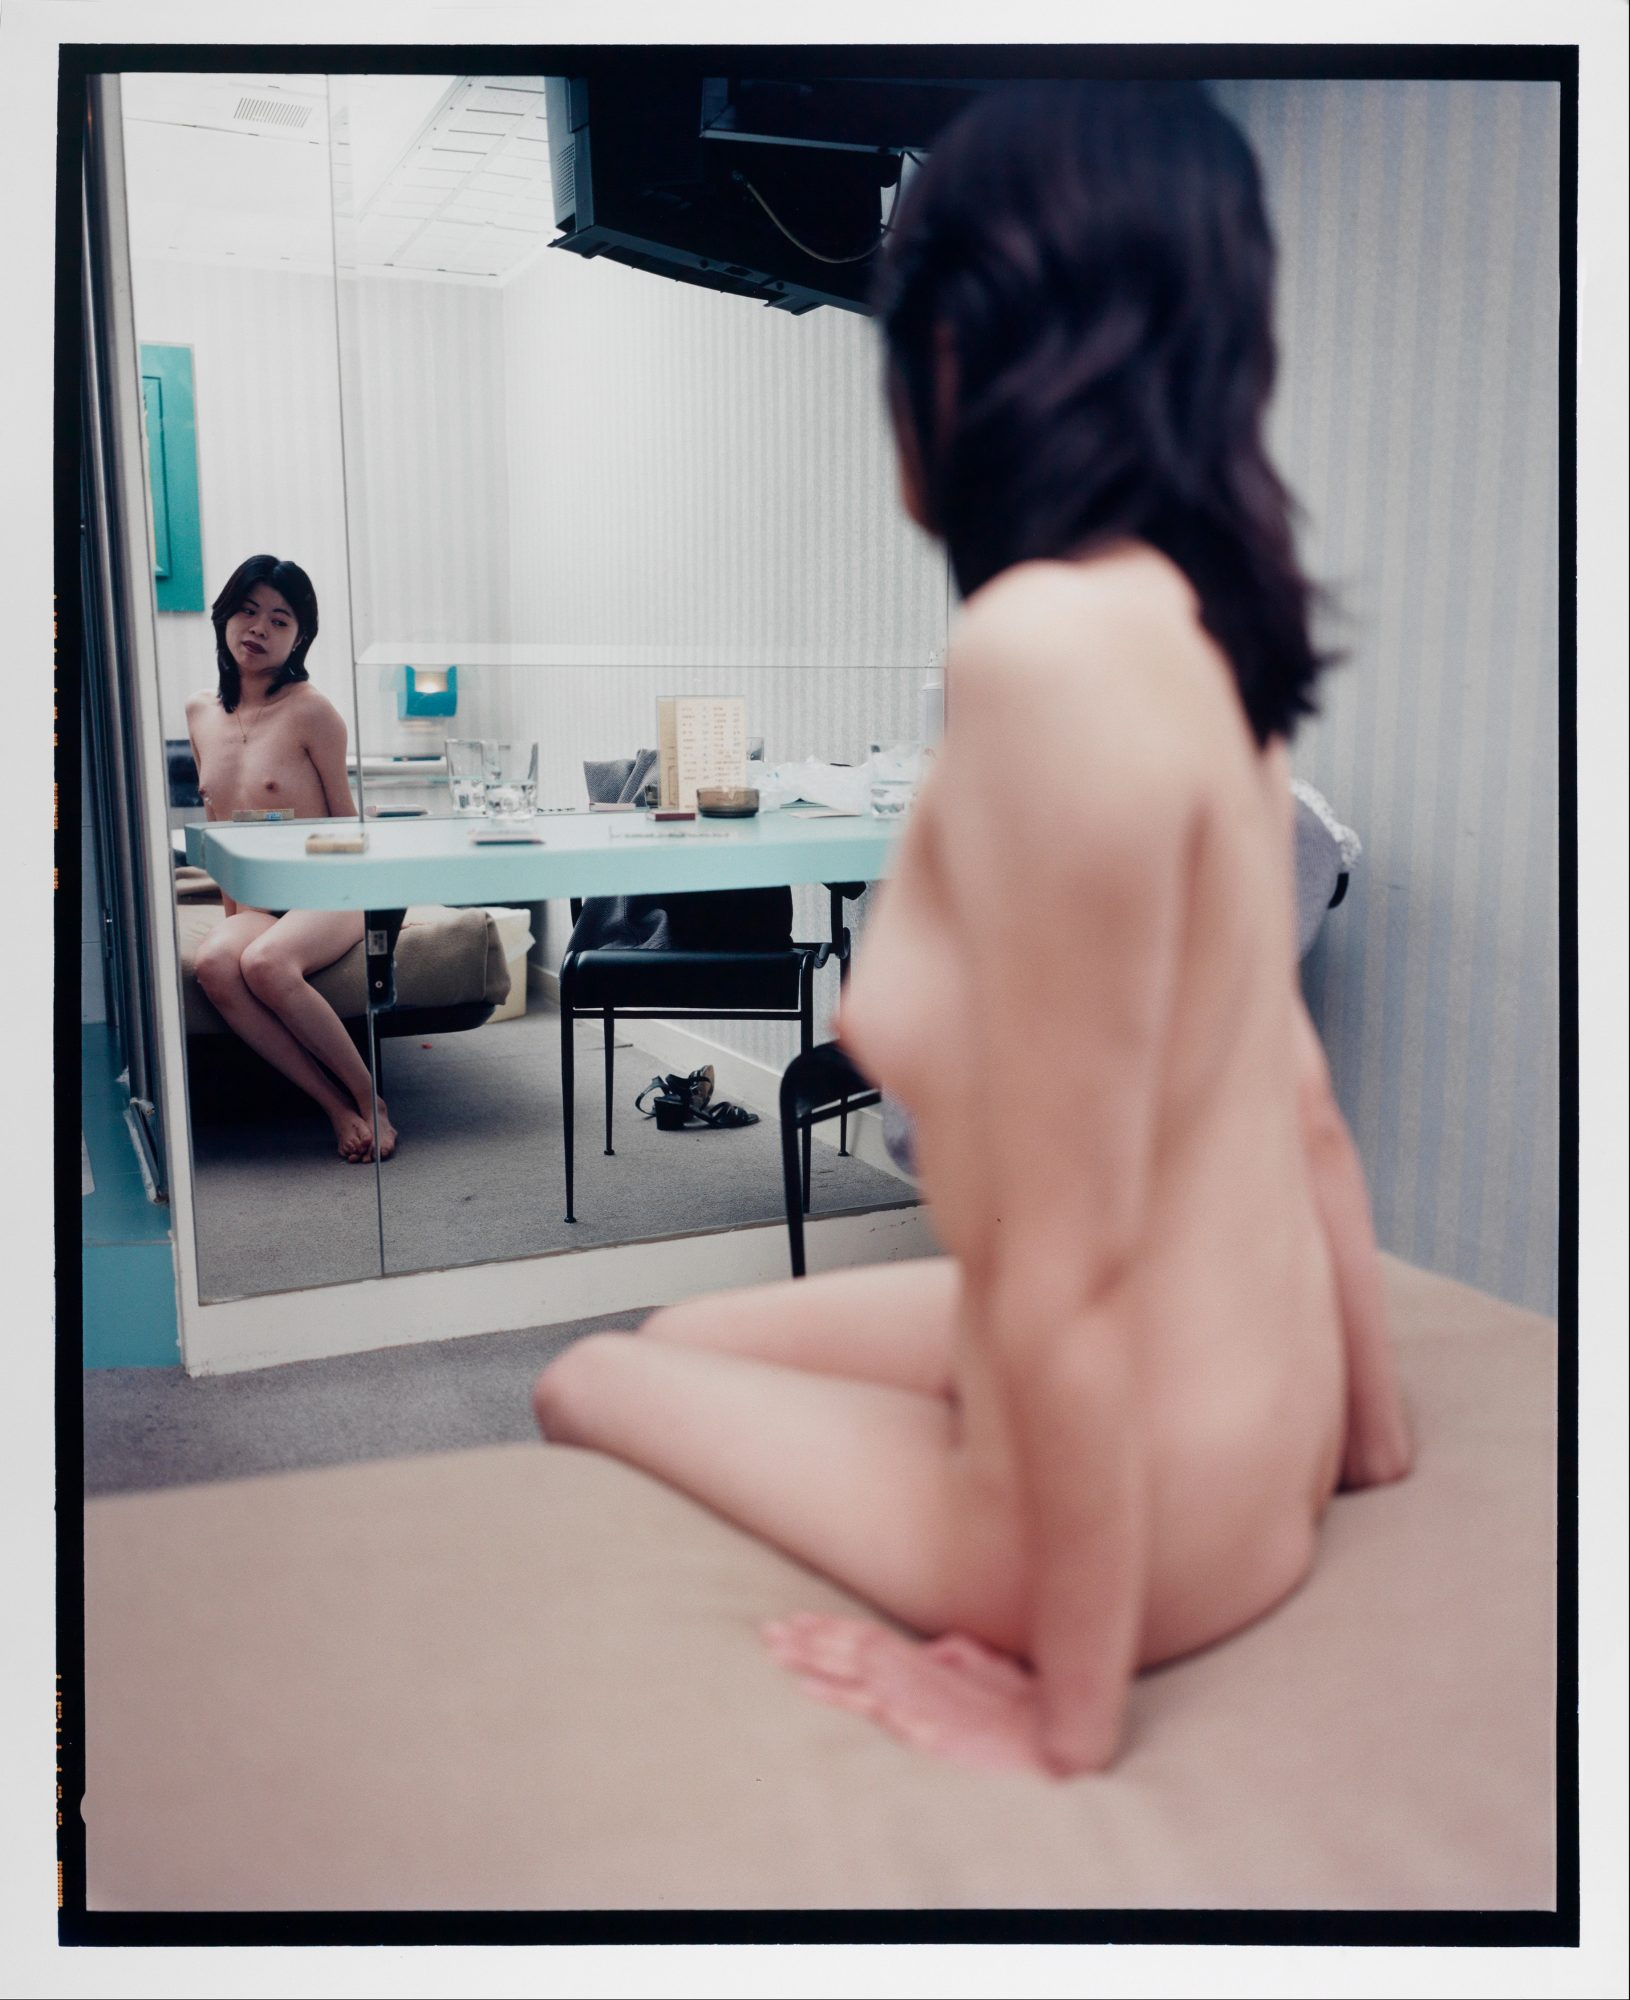 Reagan Louie (American, b. 1951) Suzie, Hong Kong, 1997. Type C-print, Gift of the artist in honor of his son, Ralston Peregrine Louie, Class of 2014, M.2014.13.1